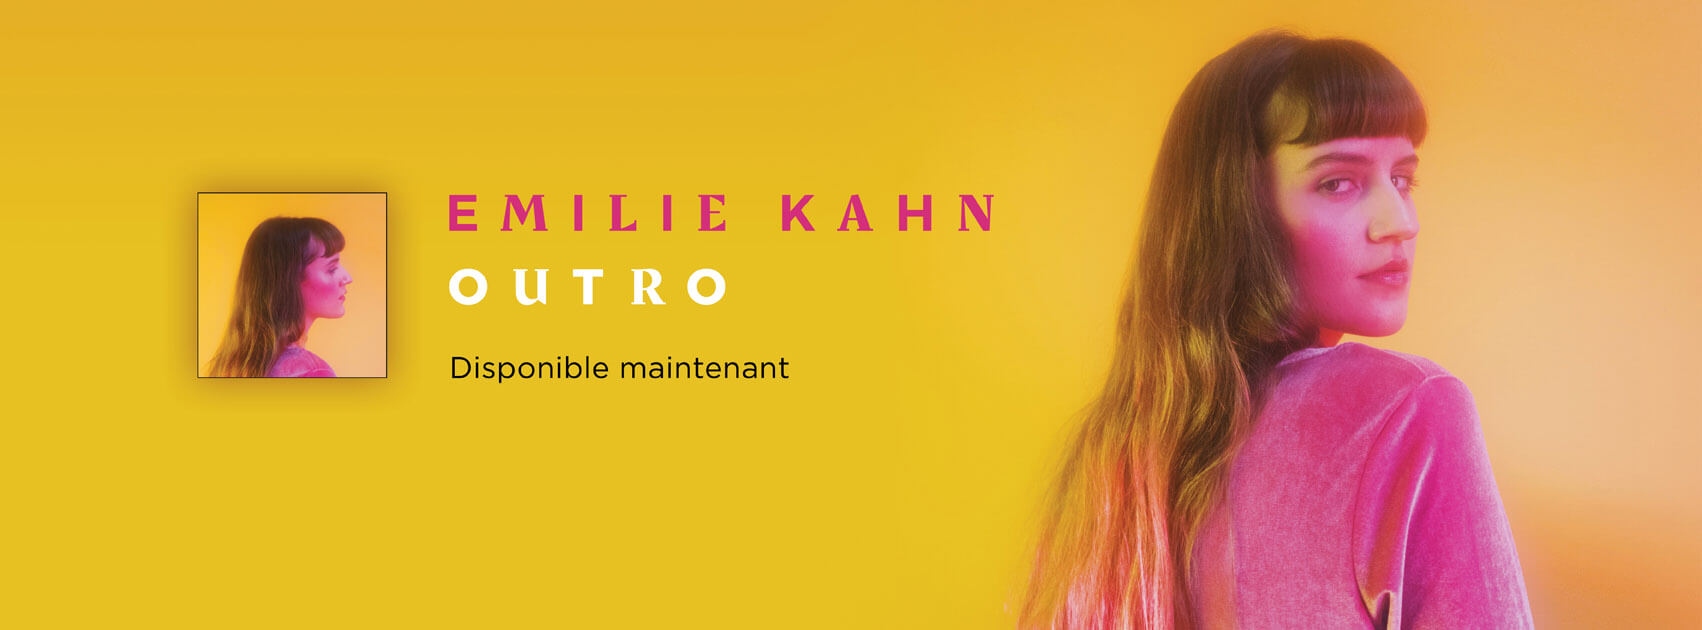 Emilie Kahn Outro disponible maintenant